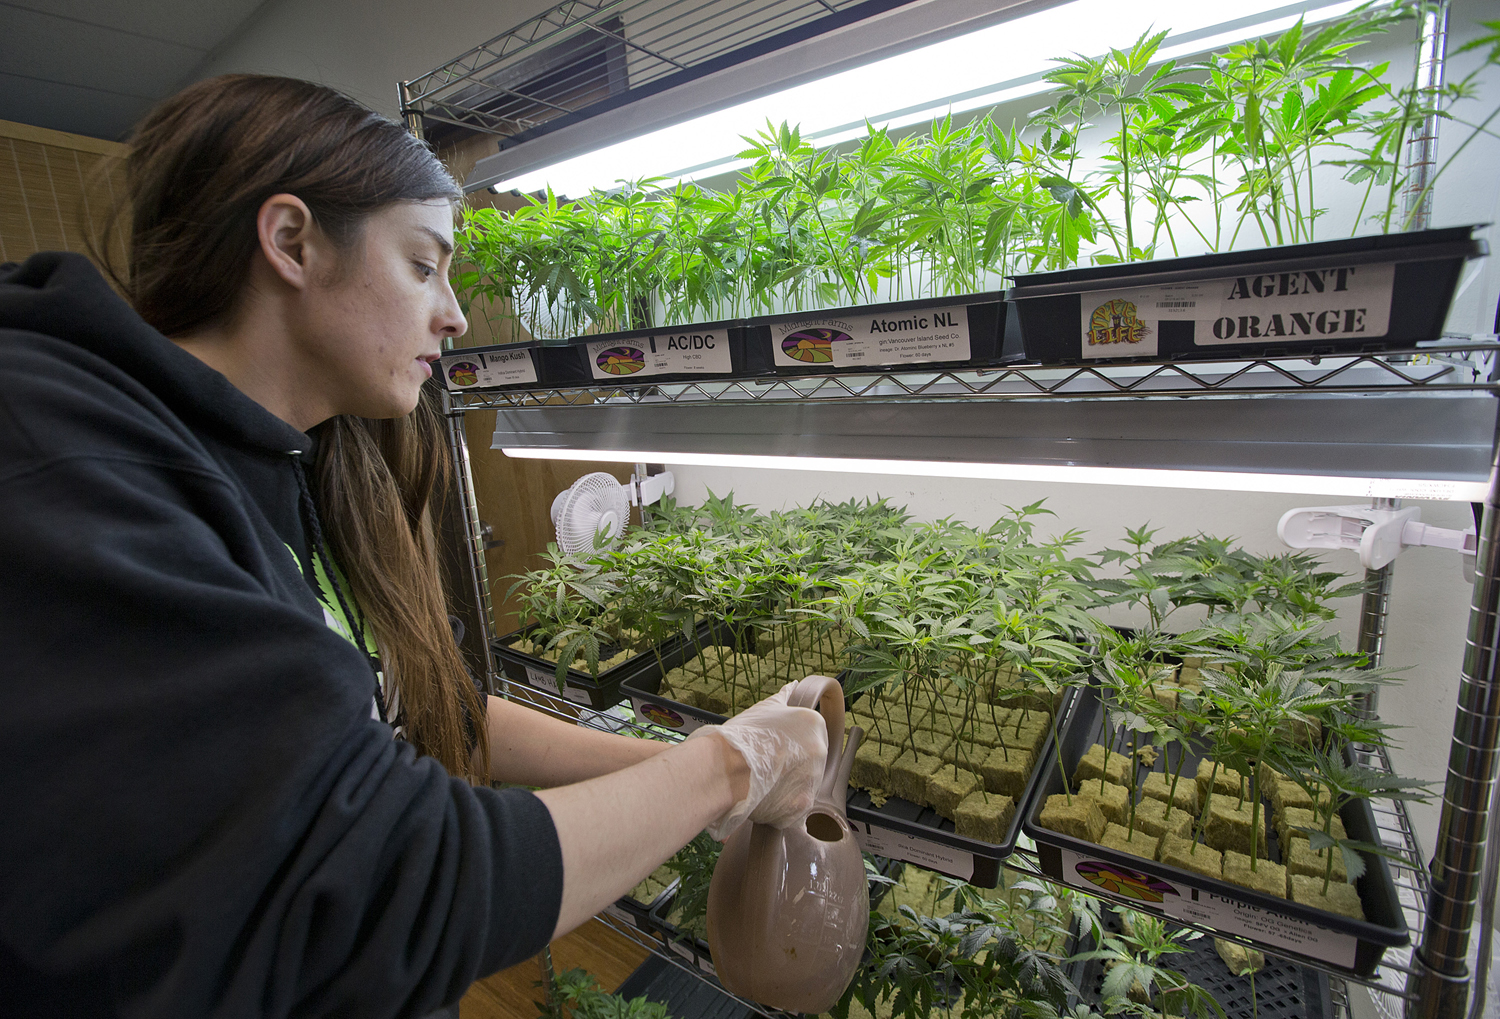 Elyse Jones waters marijuana clones at the Harborside Health Center medical marijuana dispensary on May 14, 2015, in San Jose, California. Medical marijuana has been legalized in 32 states thanks to pressures from criminal justice reform proponents, civil rights groups and drug policy reform advocates.